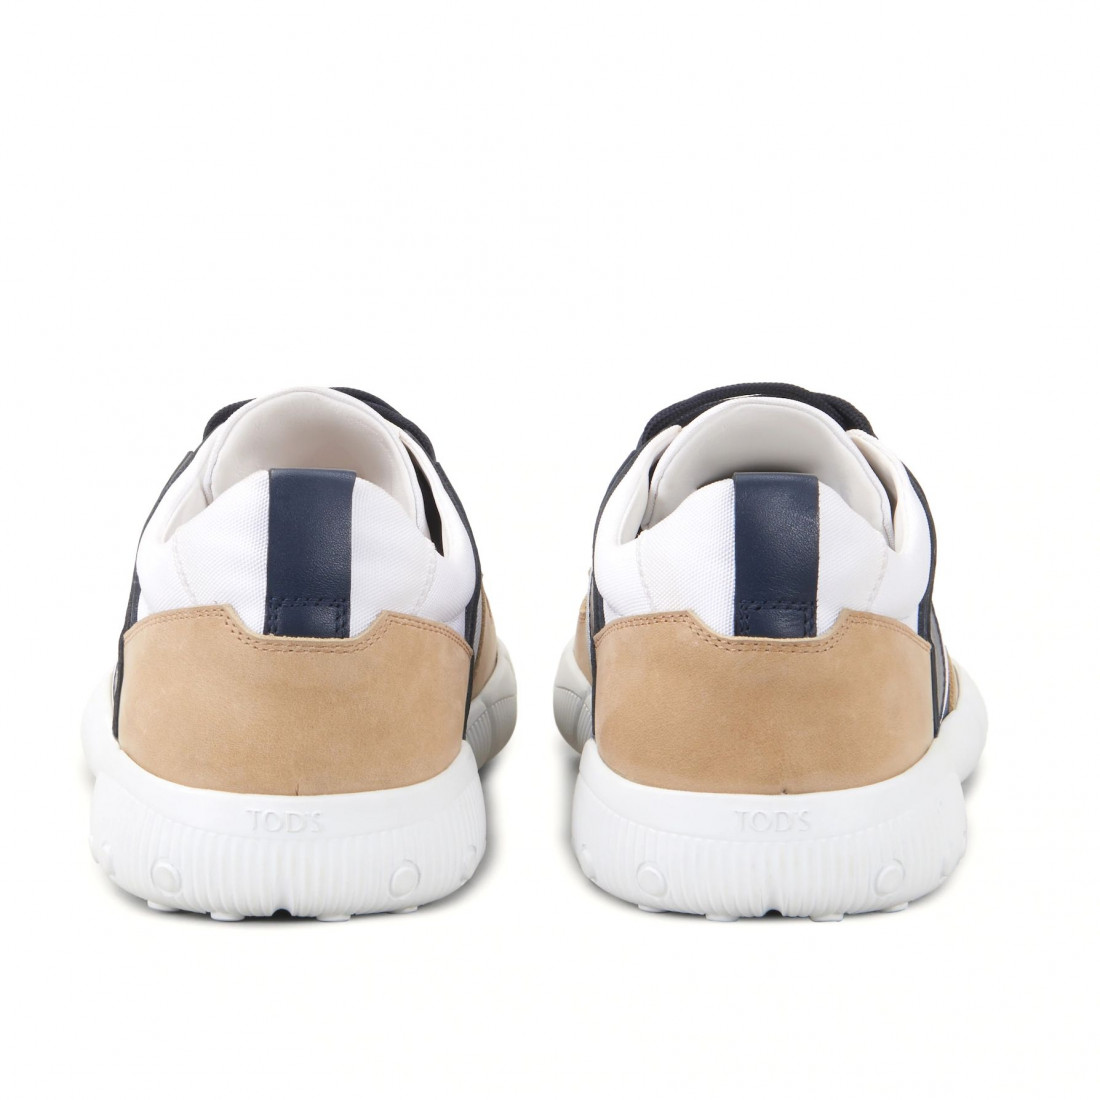 sneakers uomo tods xxm25c0cp51772vx86 6643